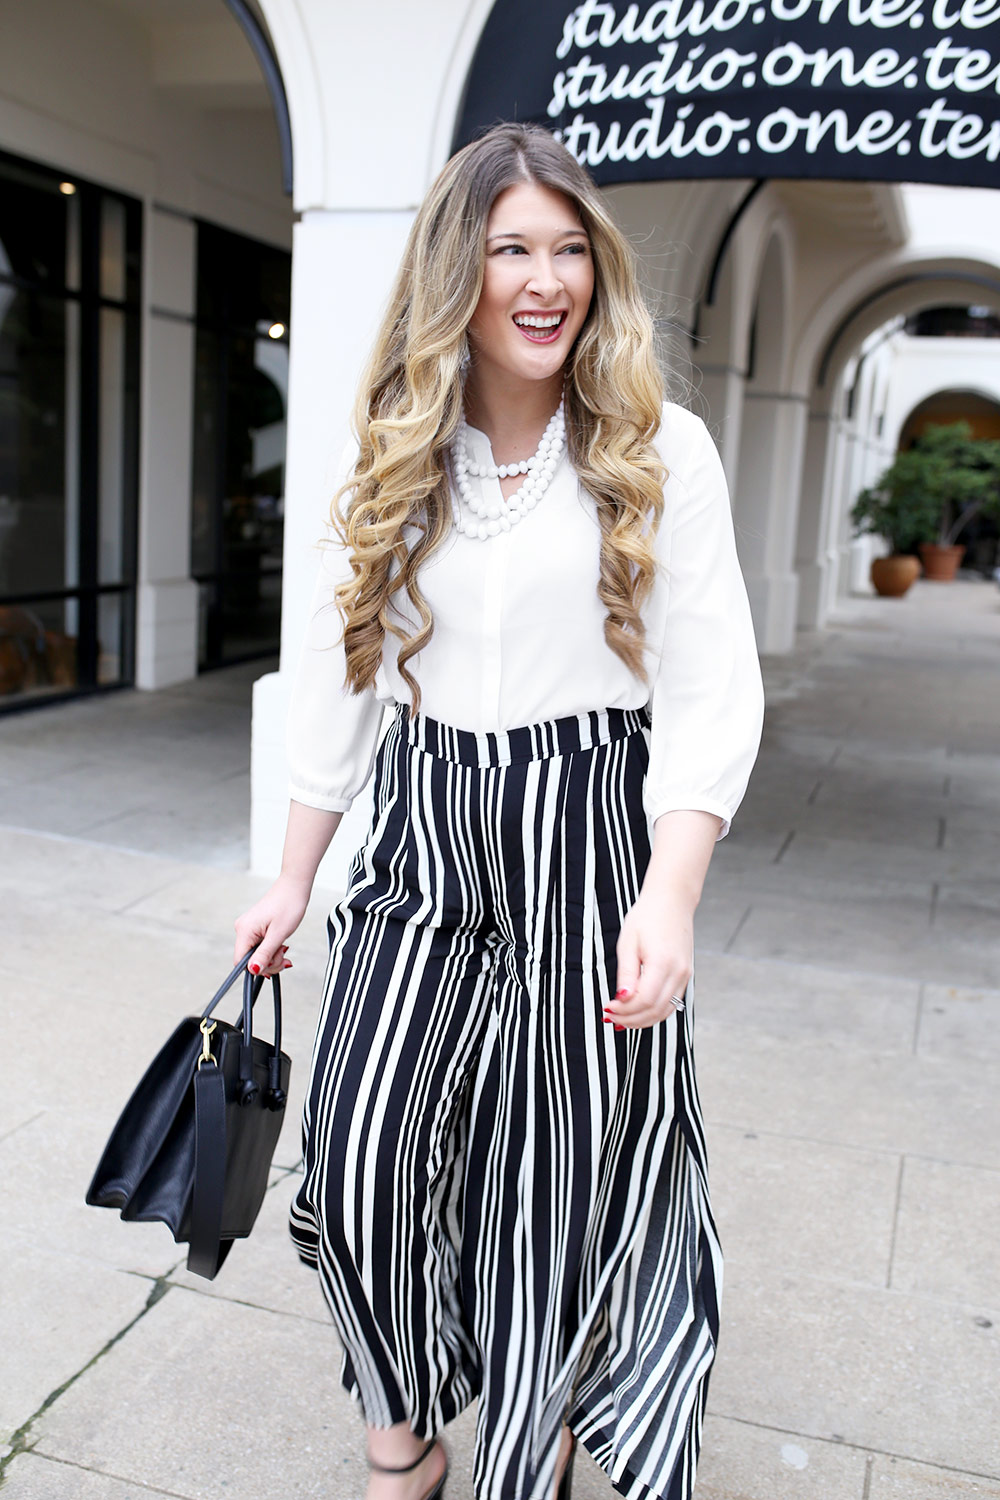 Workwear can start looking look all the same after awhile. I tend to stick to my basic black pants and skirt for the most part, but sometimes, it's fun to switch things up. These trendy striped wide-leg pants are perfect for an elegant business casual look with tons of personality.